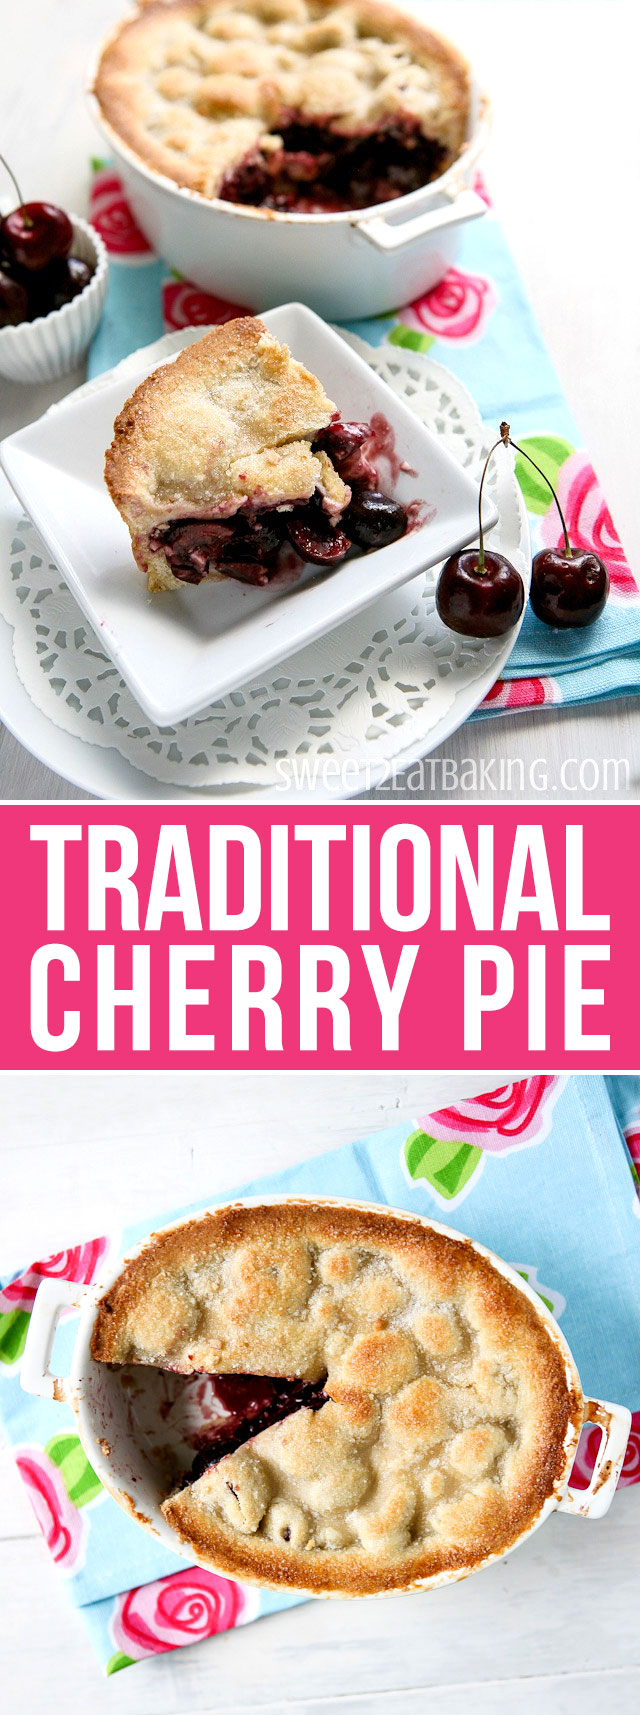 Cherry Pie Recipe by Sweet2EatBaking.com   An all American classic recipe. a classic summer dessert, and bursting with fresh cherries.